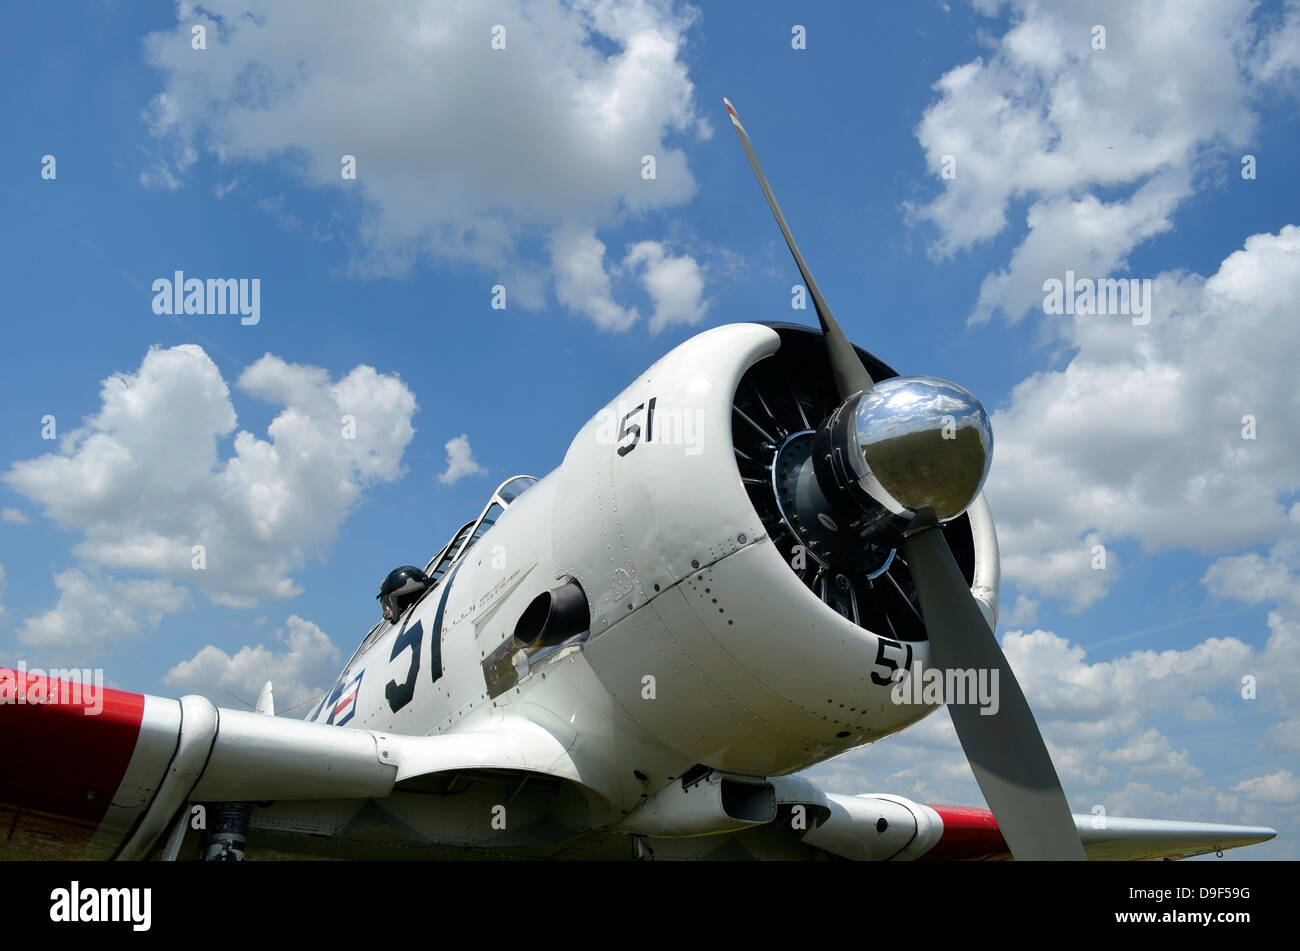 Close-up view of the propeller on a North American Aviation Harvard II warbird. - Stock Image